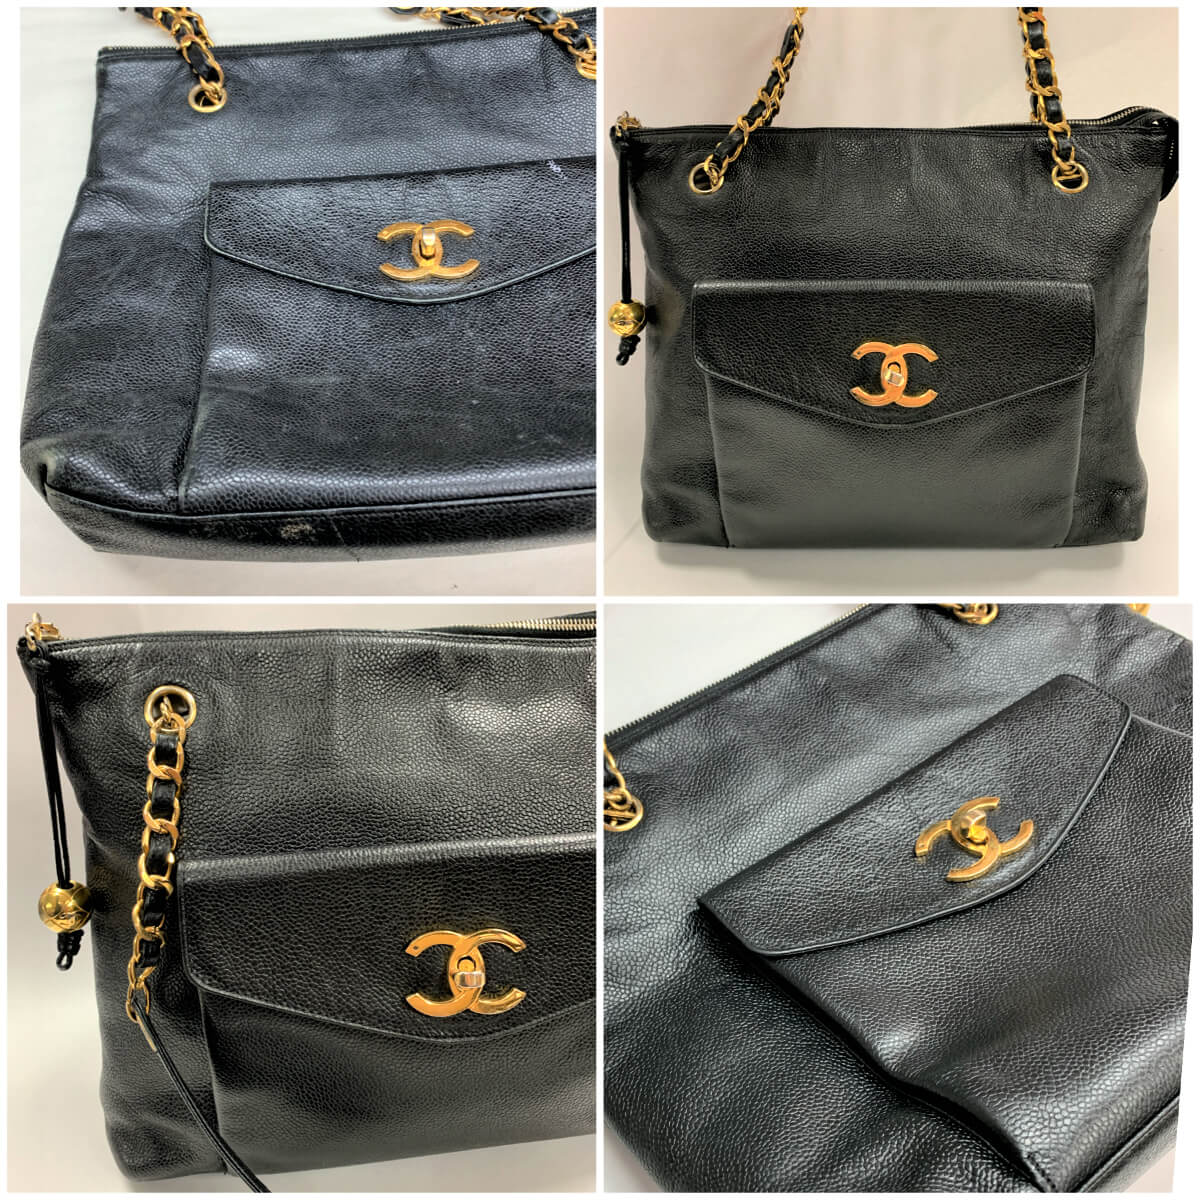 Chanel Leather Cleaning and Refinishing